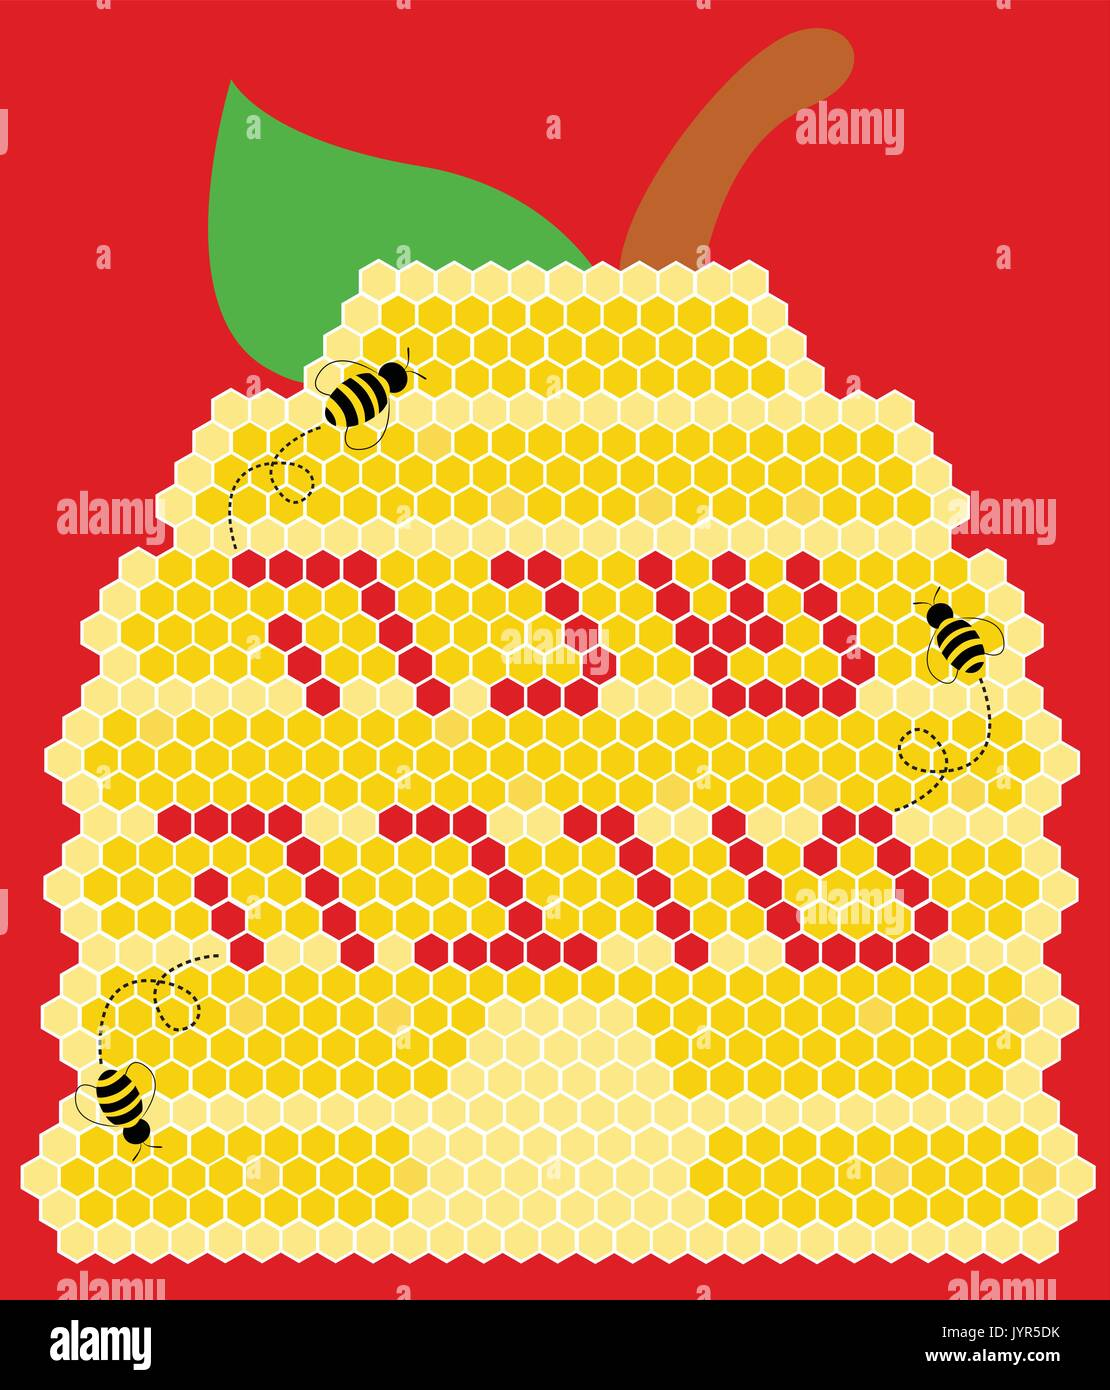 Bee Hive Pattern Stock Photos Auto Electrical Wiring Diagram Cradlepoint Vector Vectors U0026